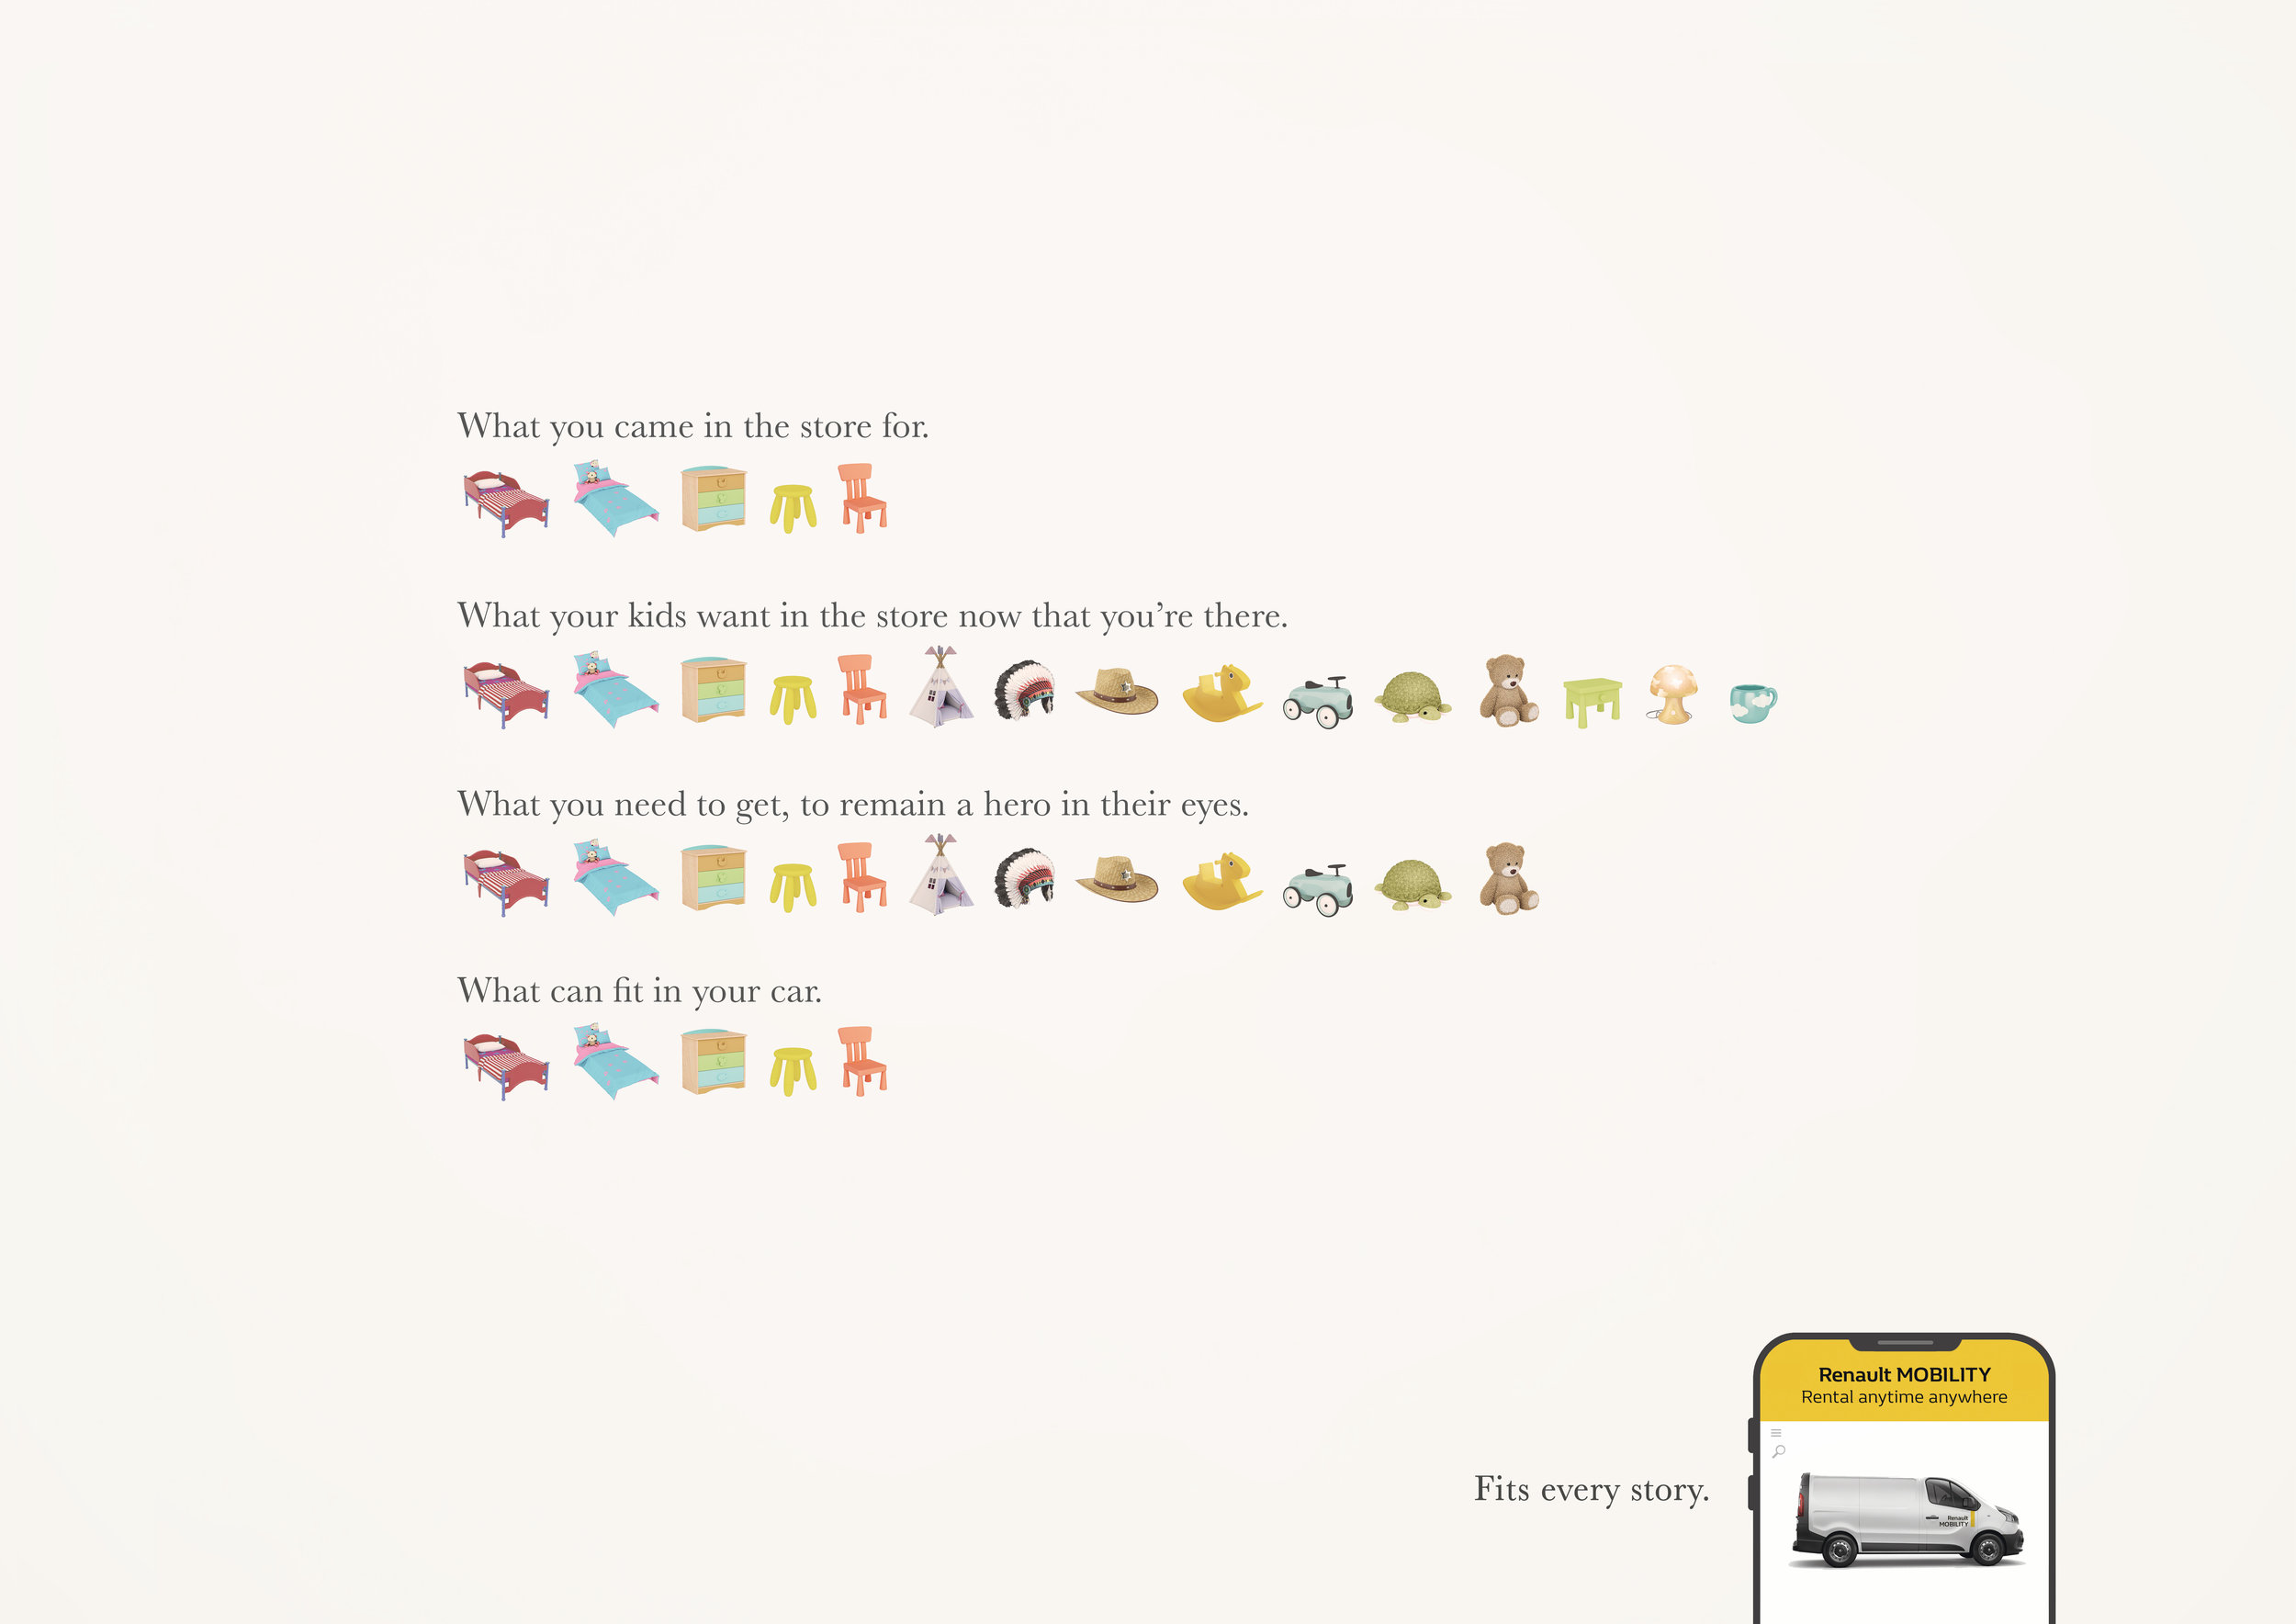 RENAULT MOBILITY - FITS EVERY STORY - KIDS.jpg